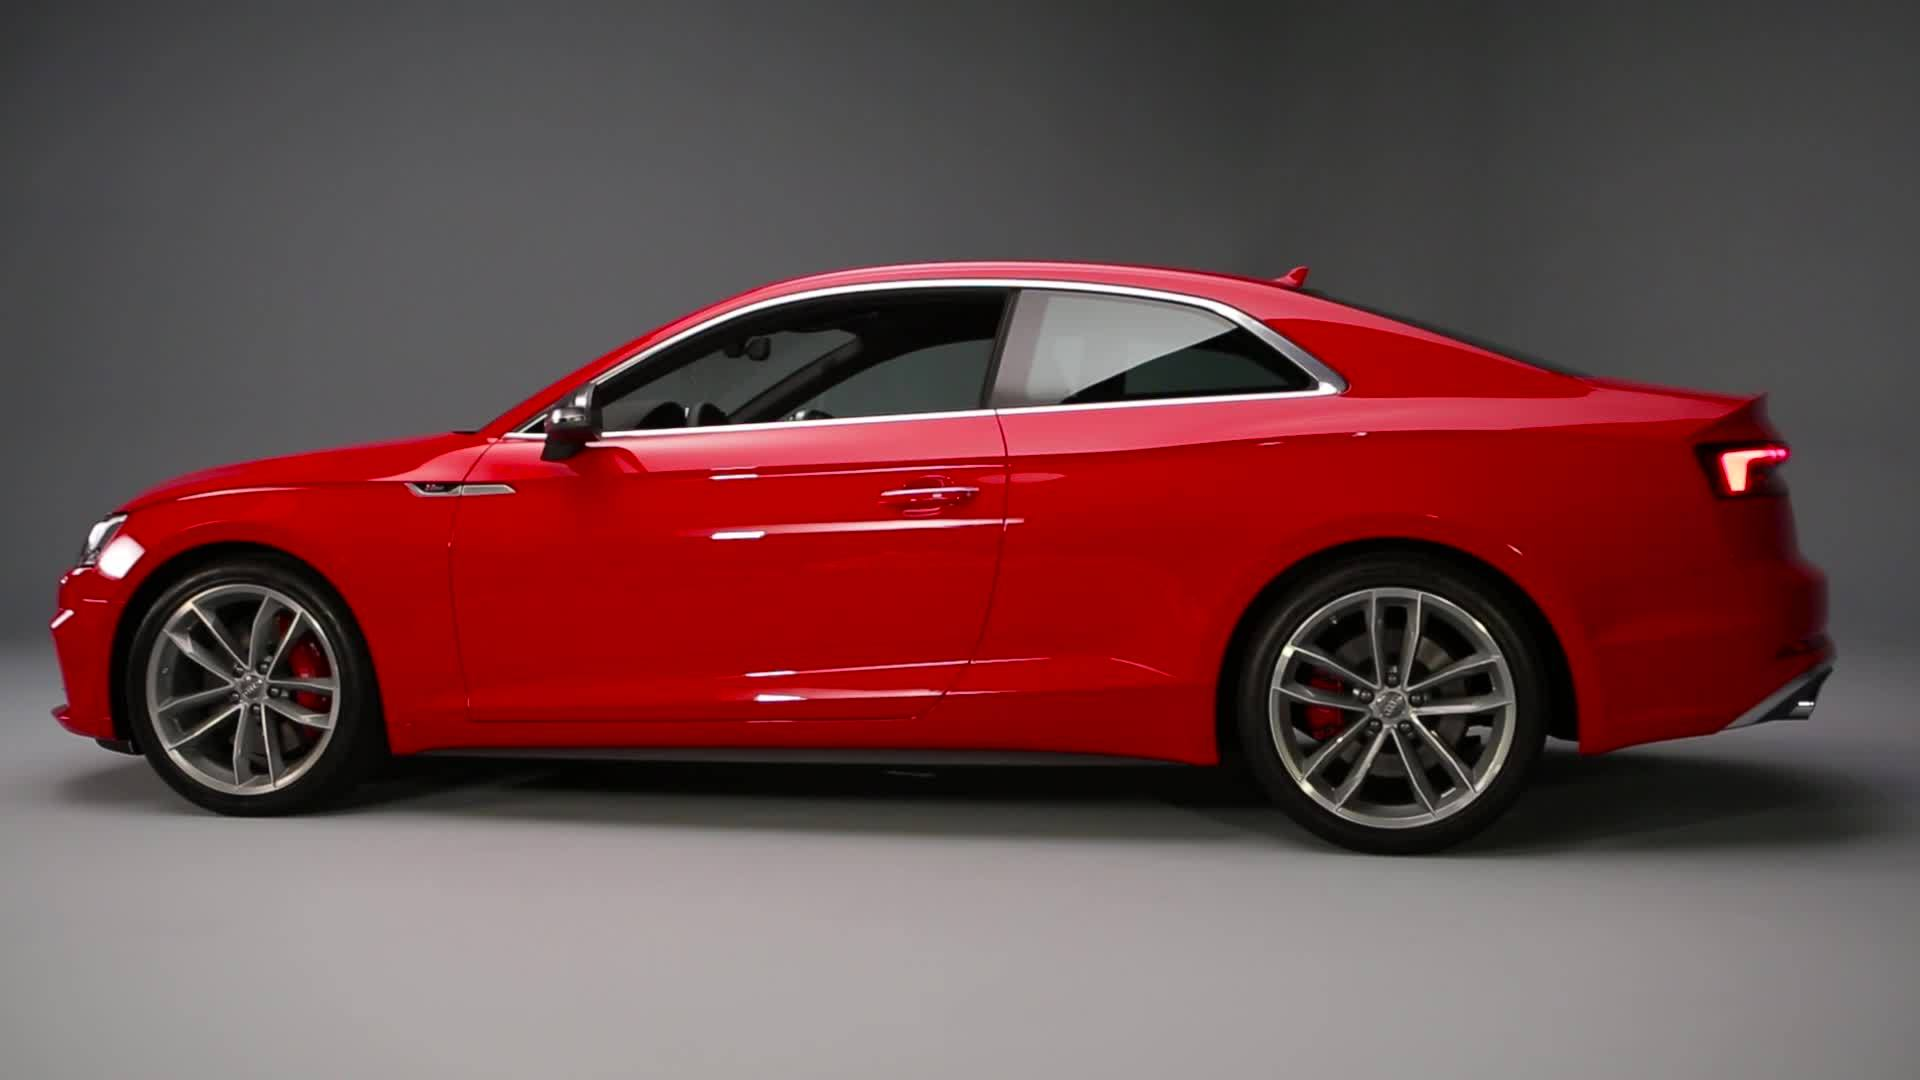 Audi A5 Coupé - New design highlight from Ingolstadt